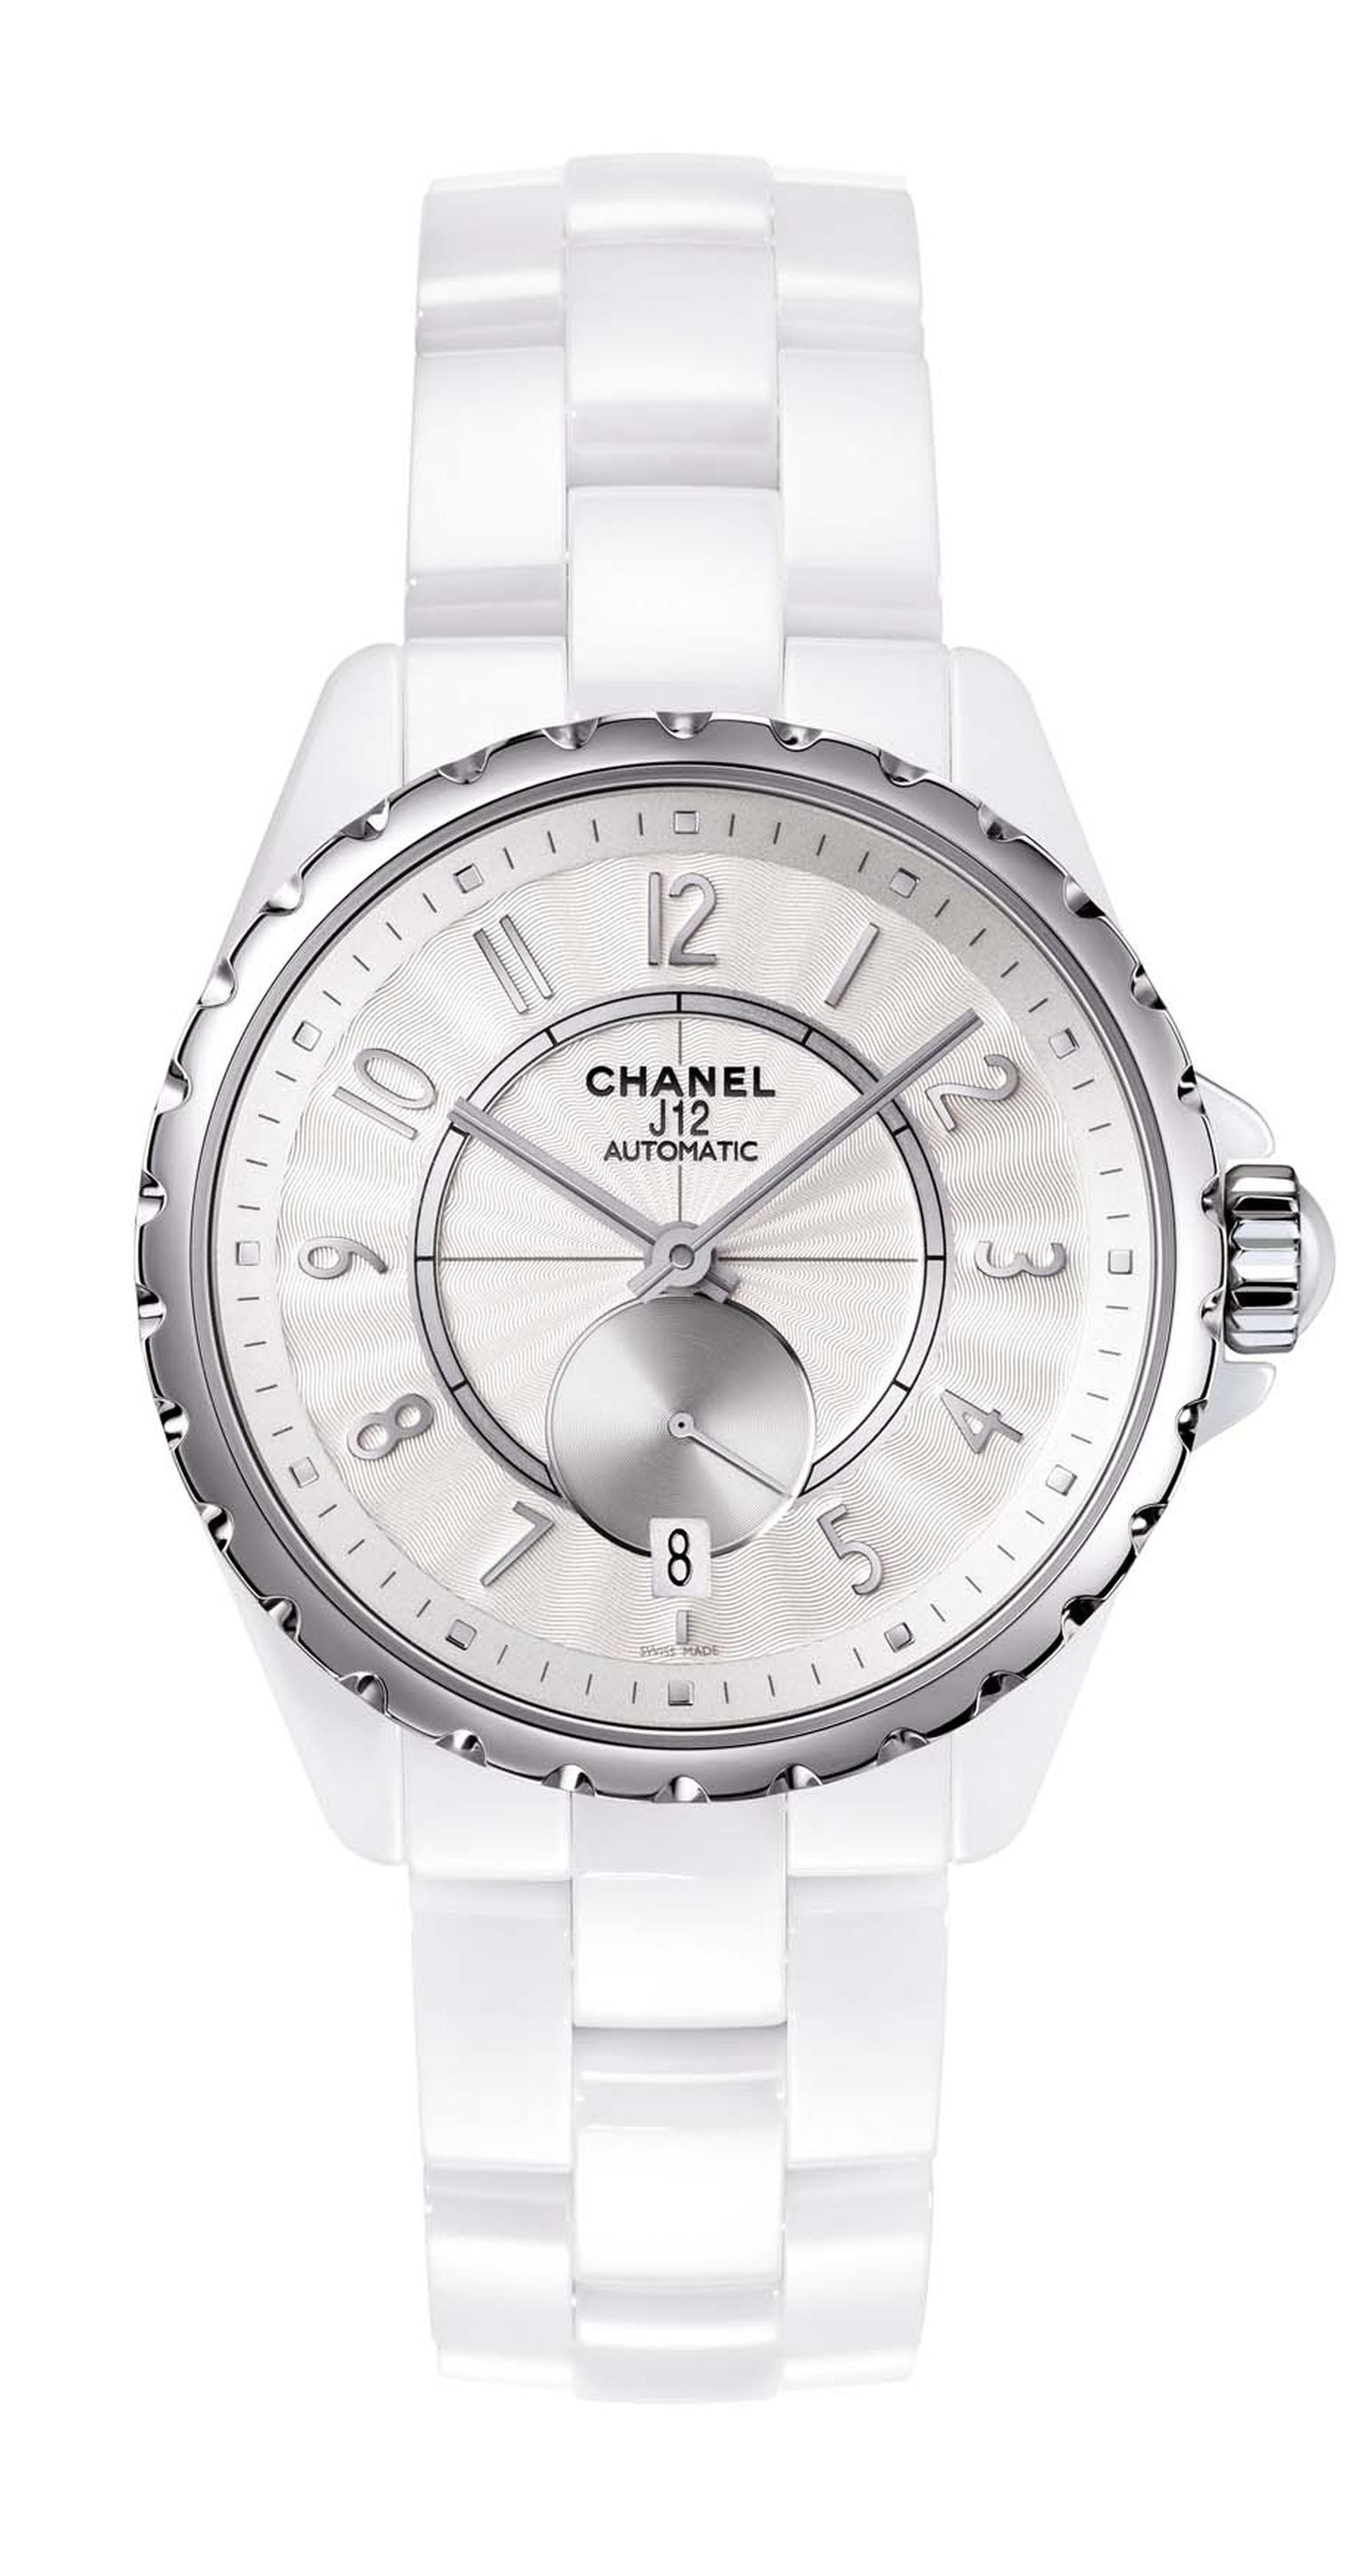 Chanel J12-365 steel watch in white high-tech ceramic featuring a Guilloche´-finished opaline dial.